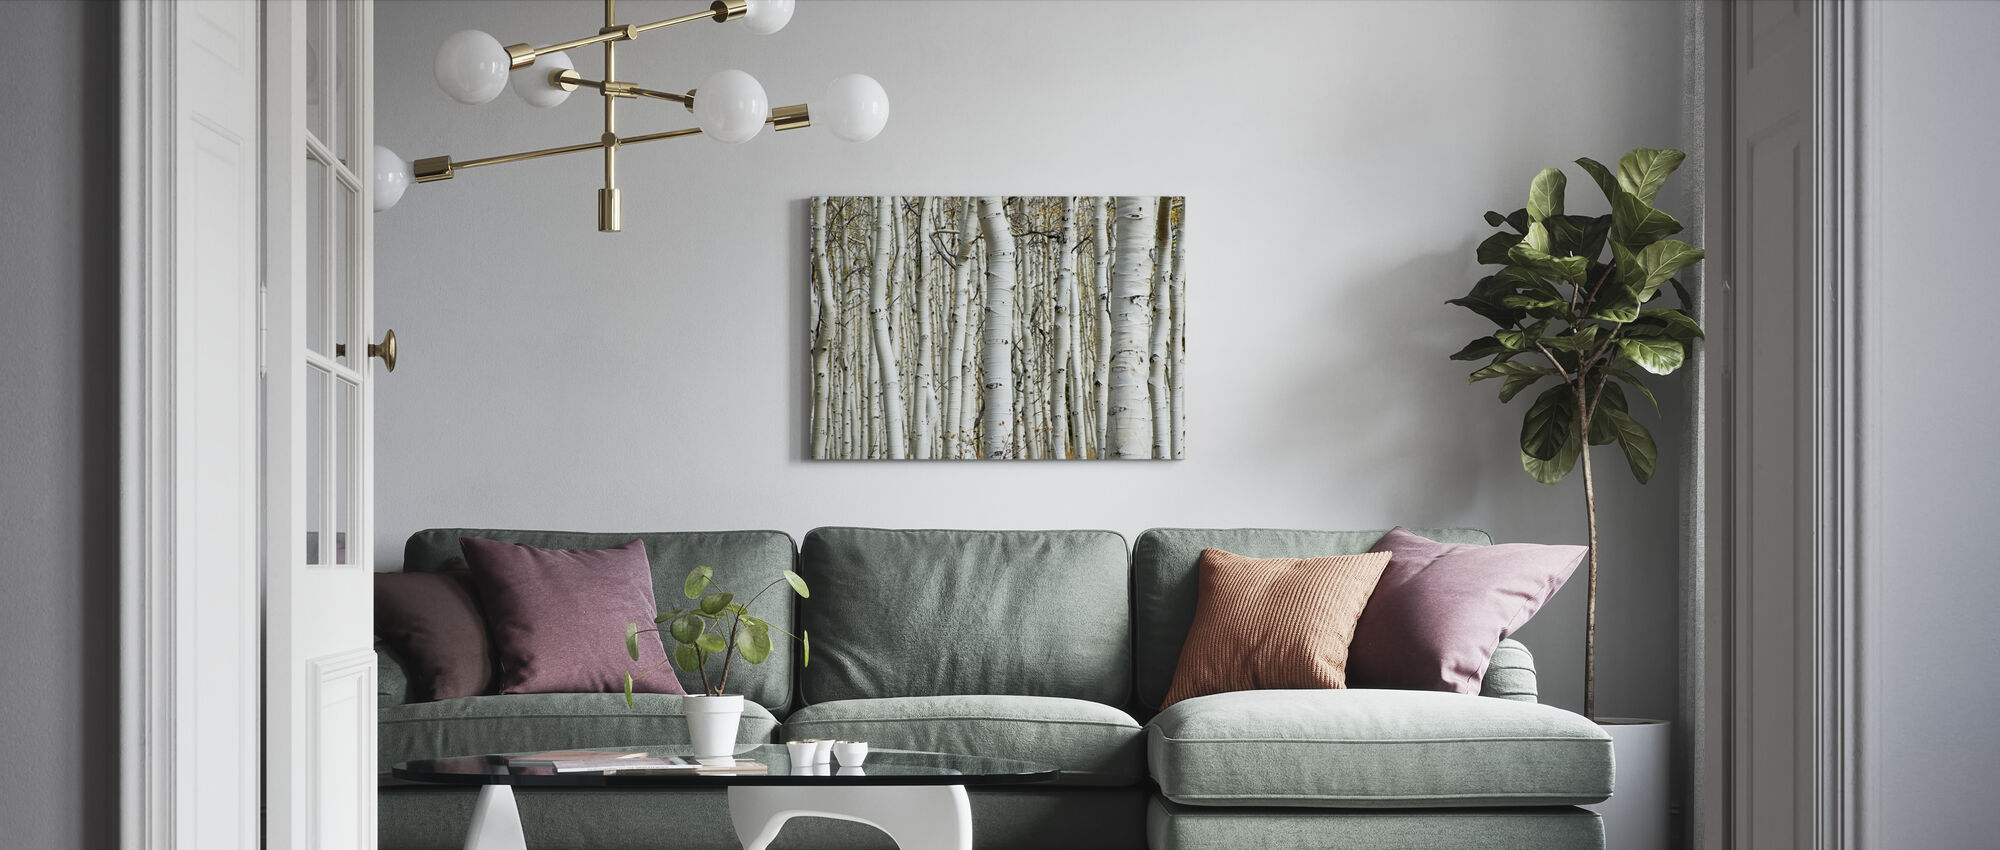 Aspen-bos - Canvas print - Woonkamer